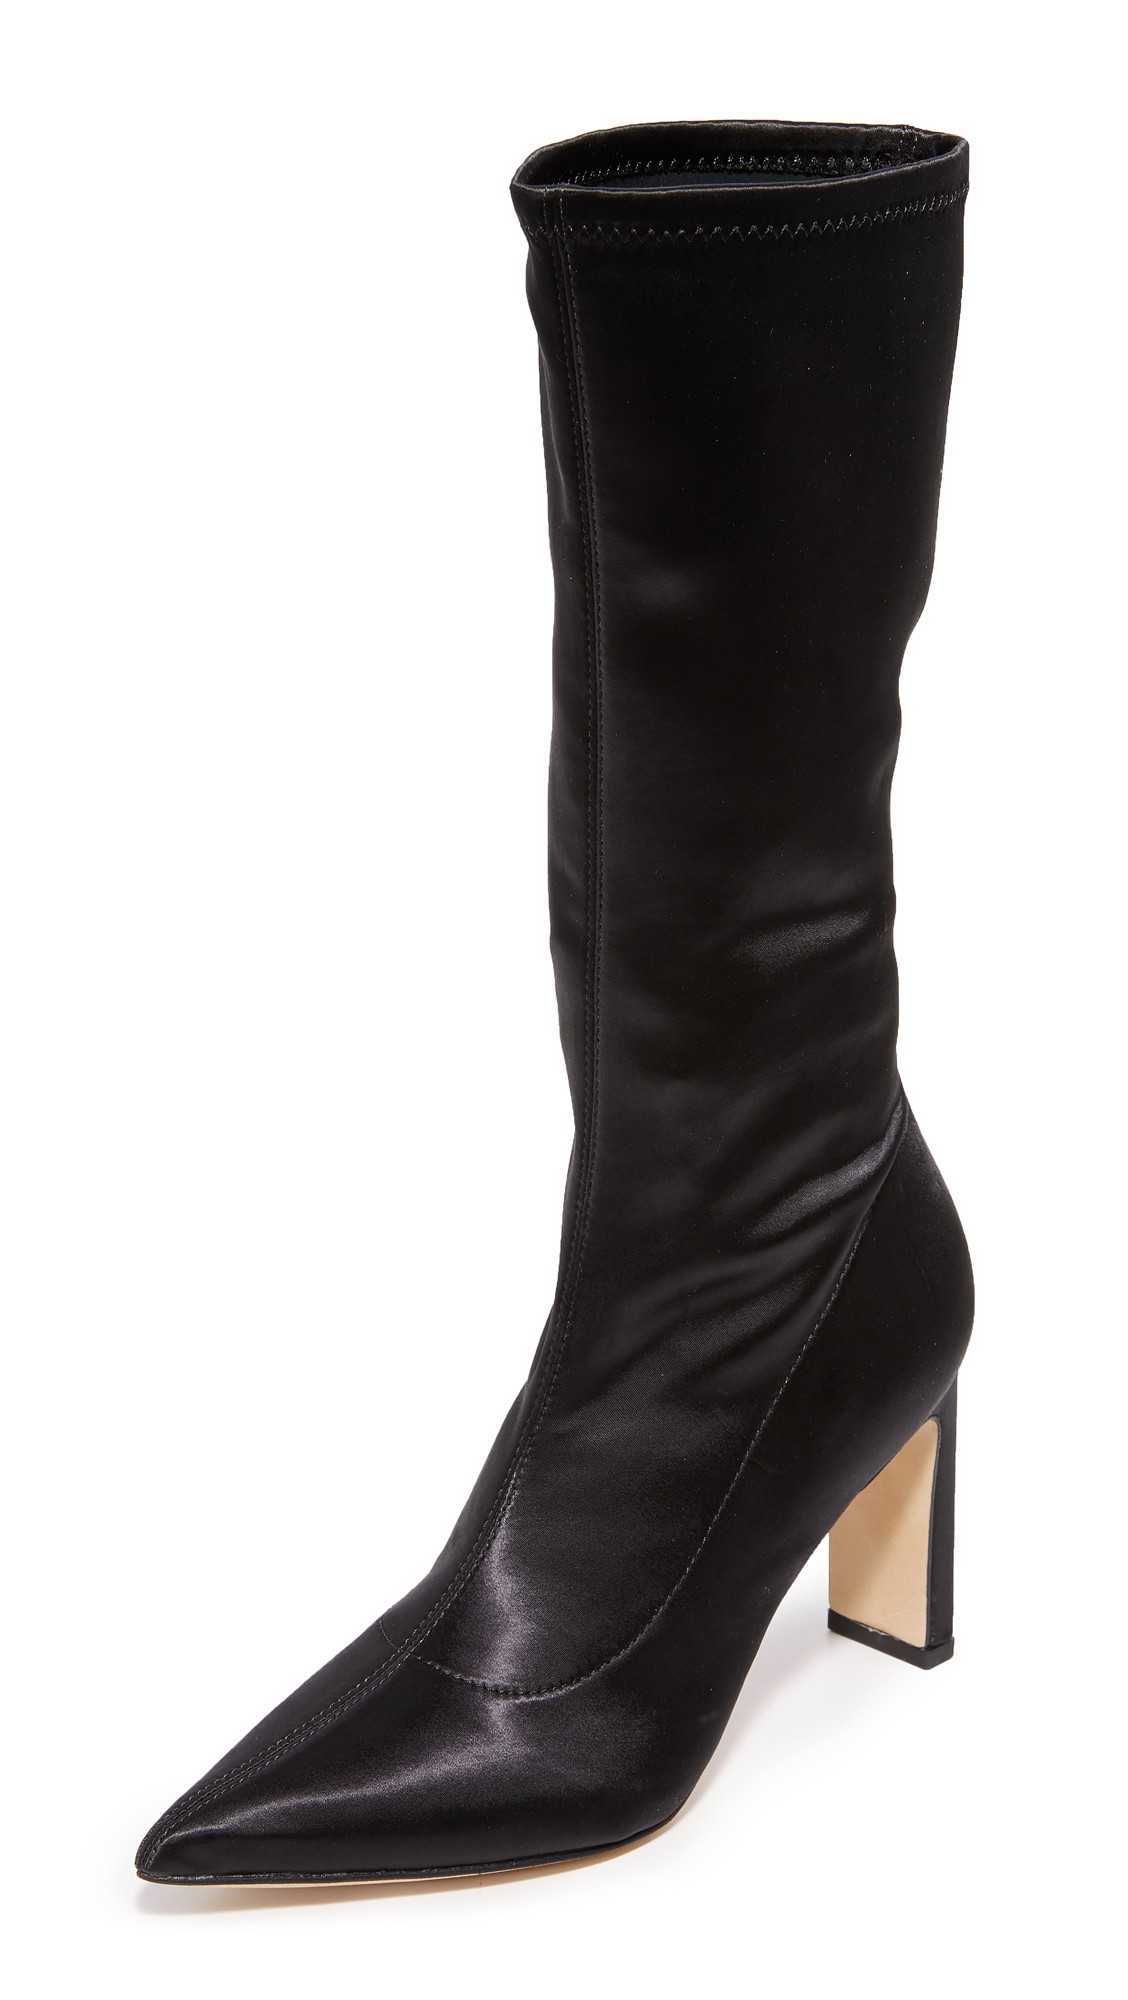 Photo of Sigerson Morrison Holly Mid Calf Boots - buy Sigerson Morrison shoes